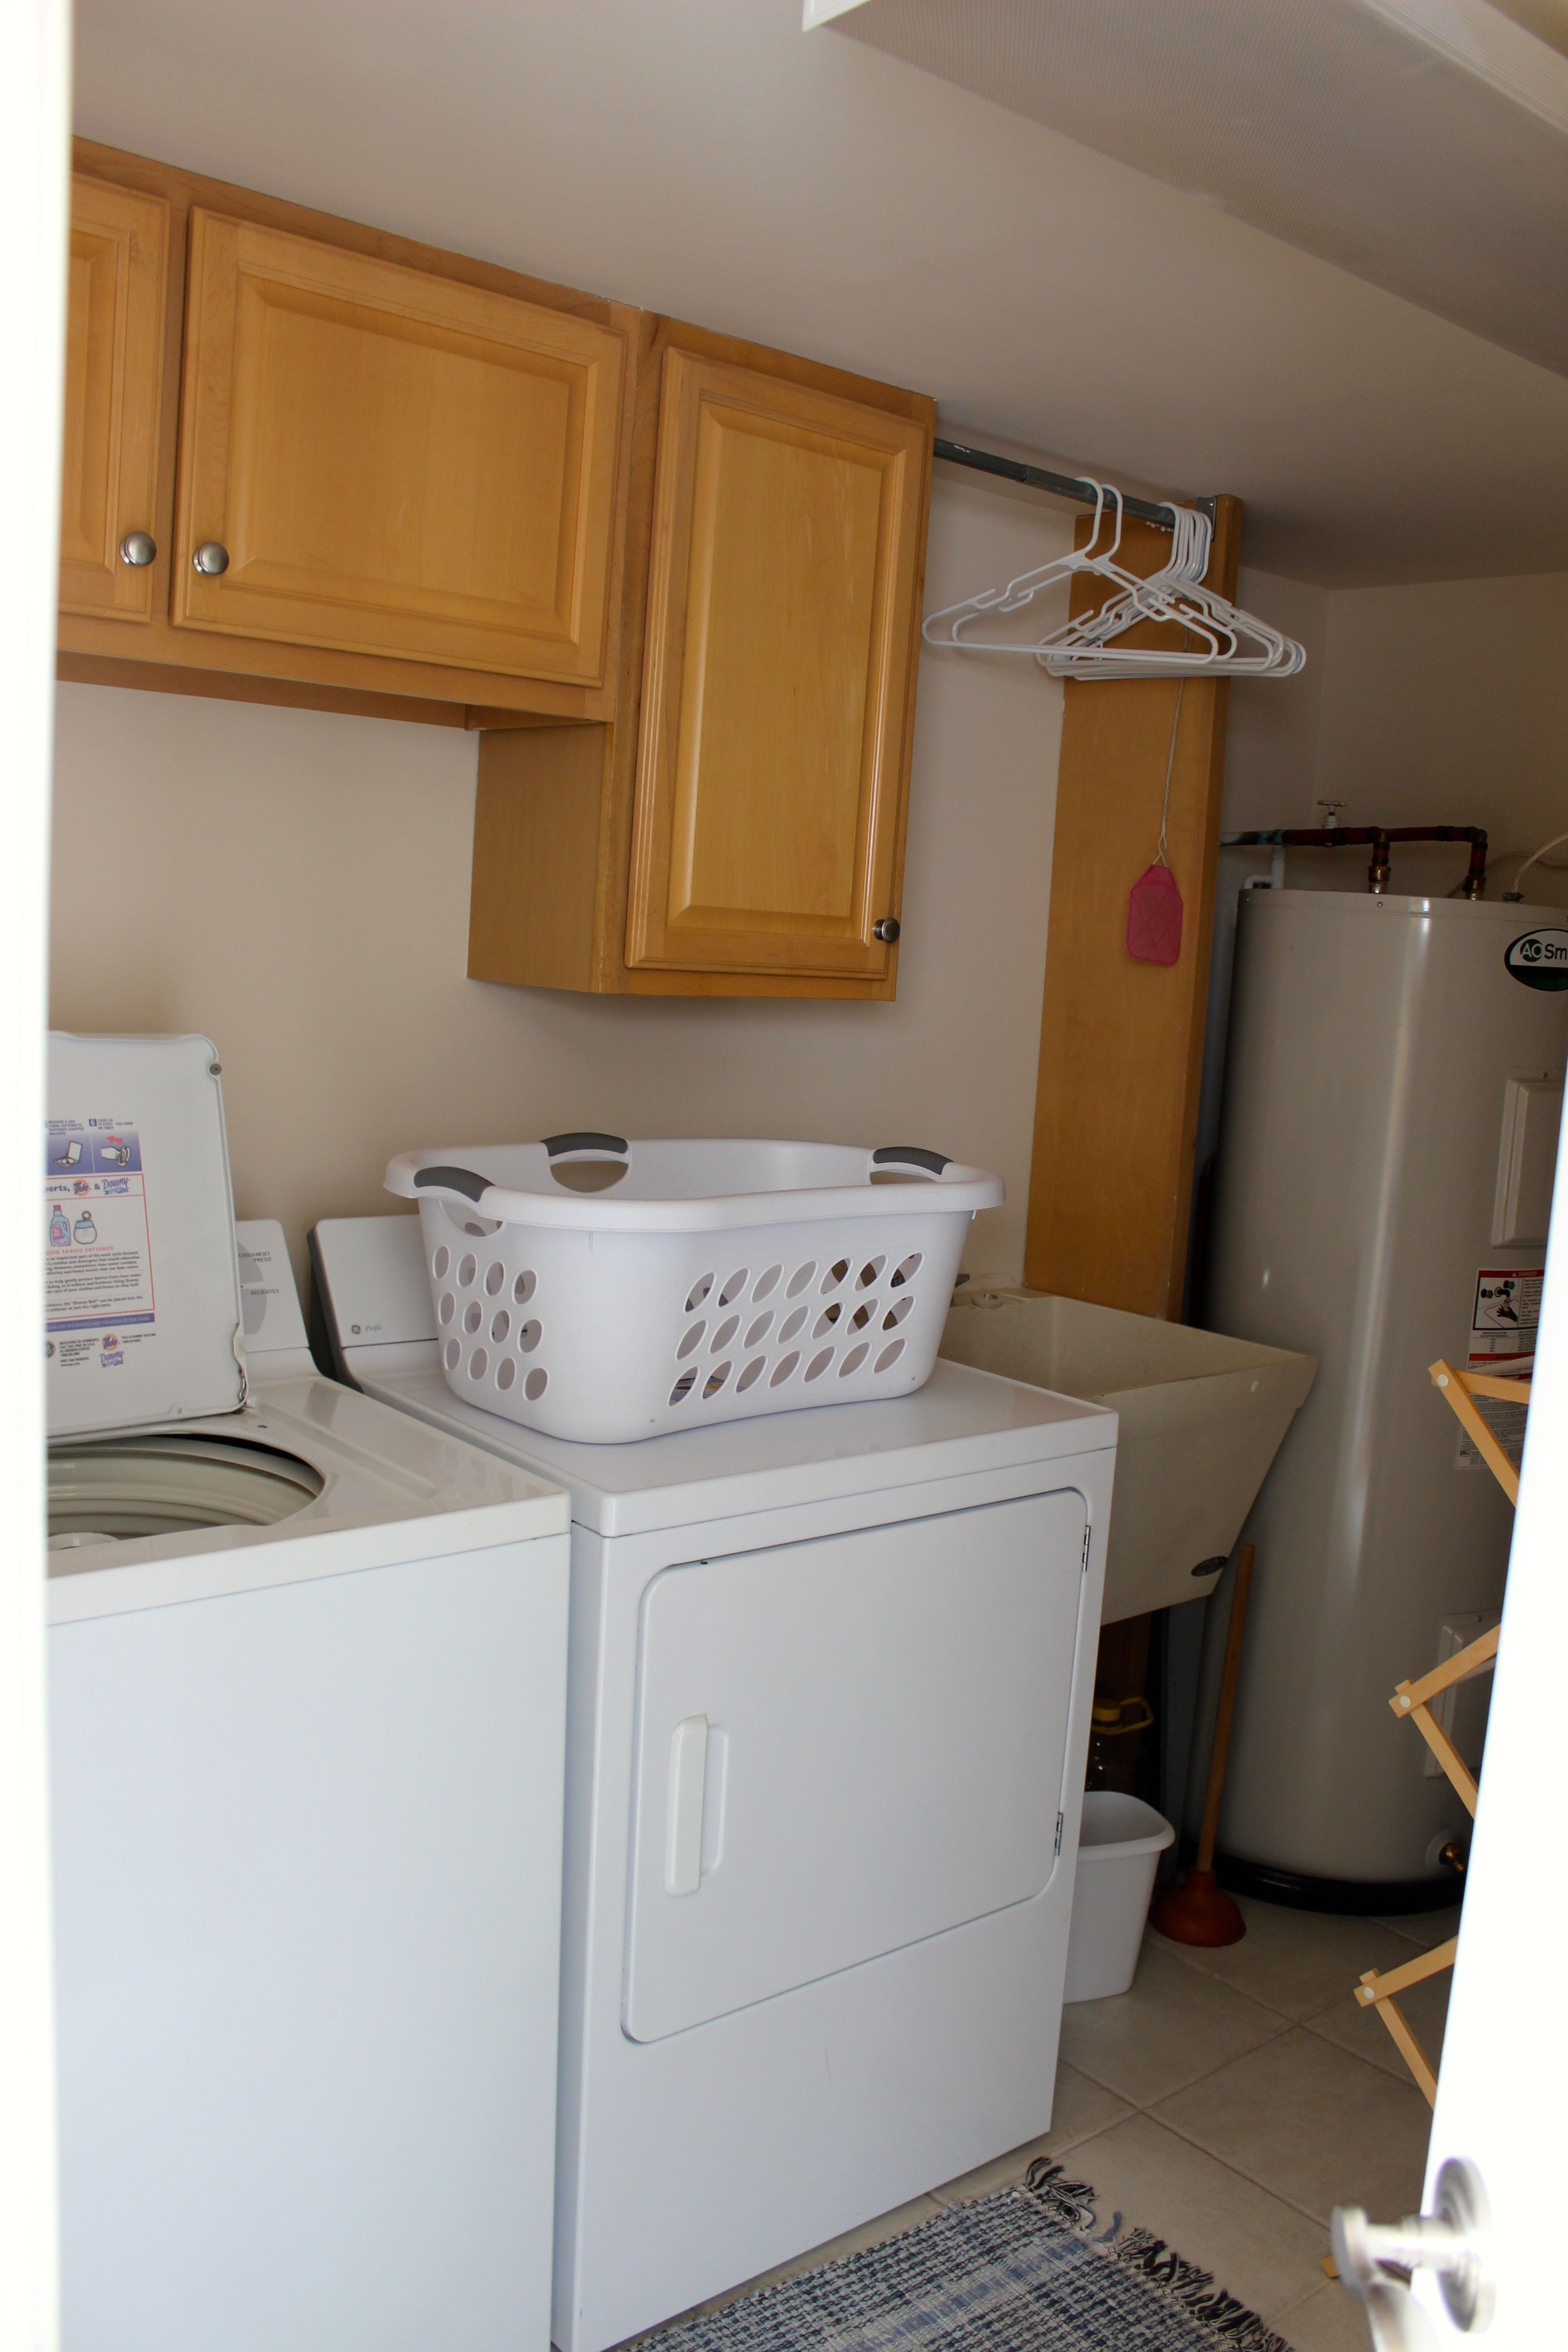 Also on the 1st floor is a large laundry room with a full sized washer and dryer.